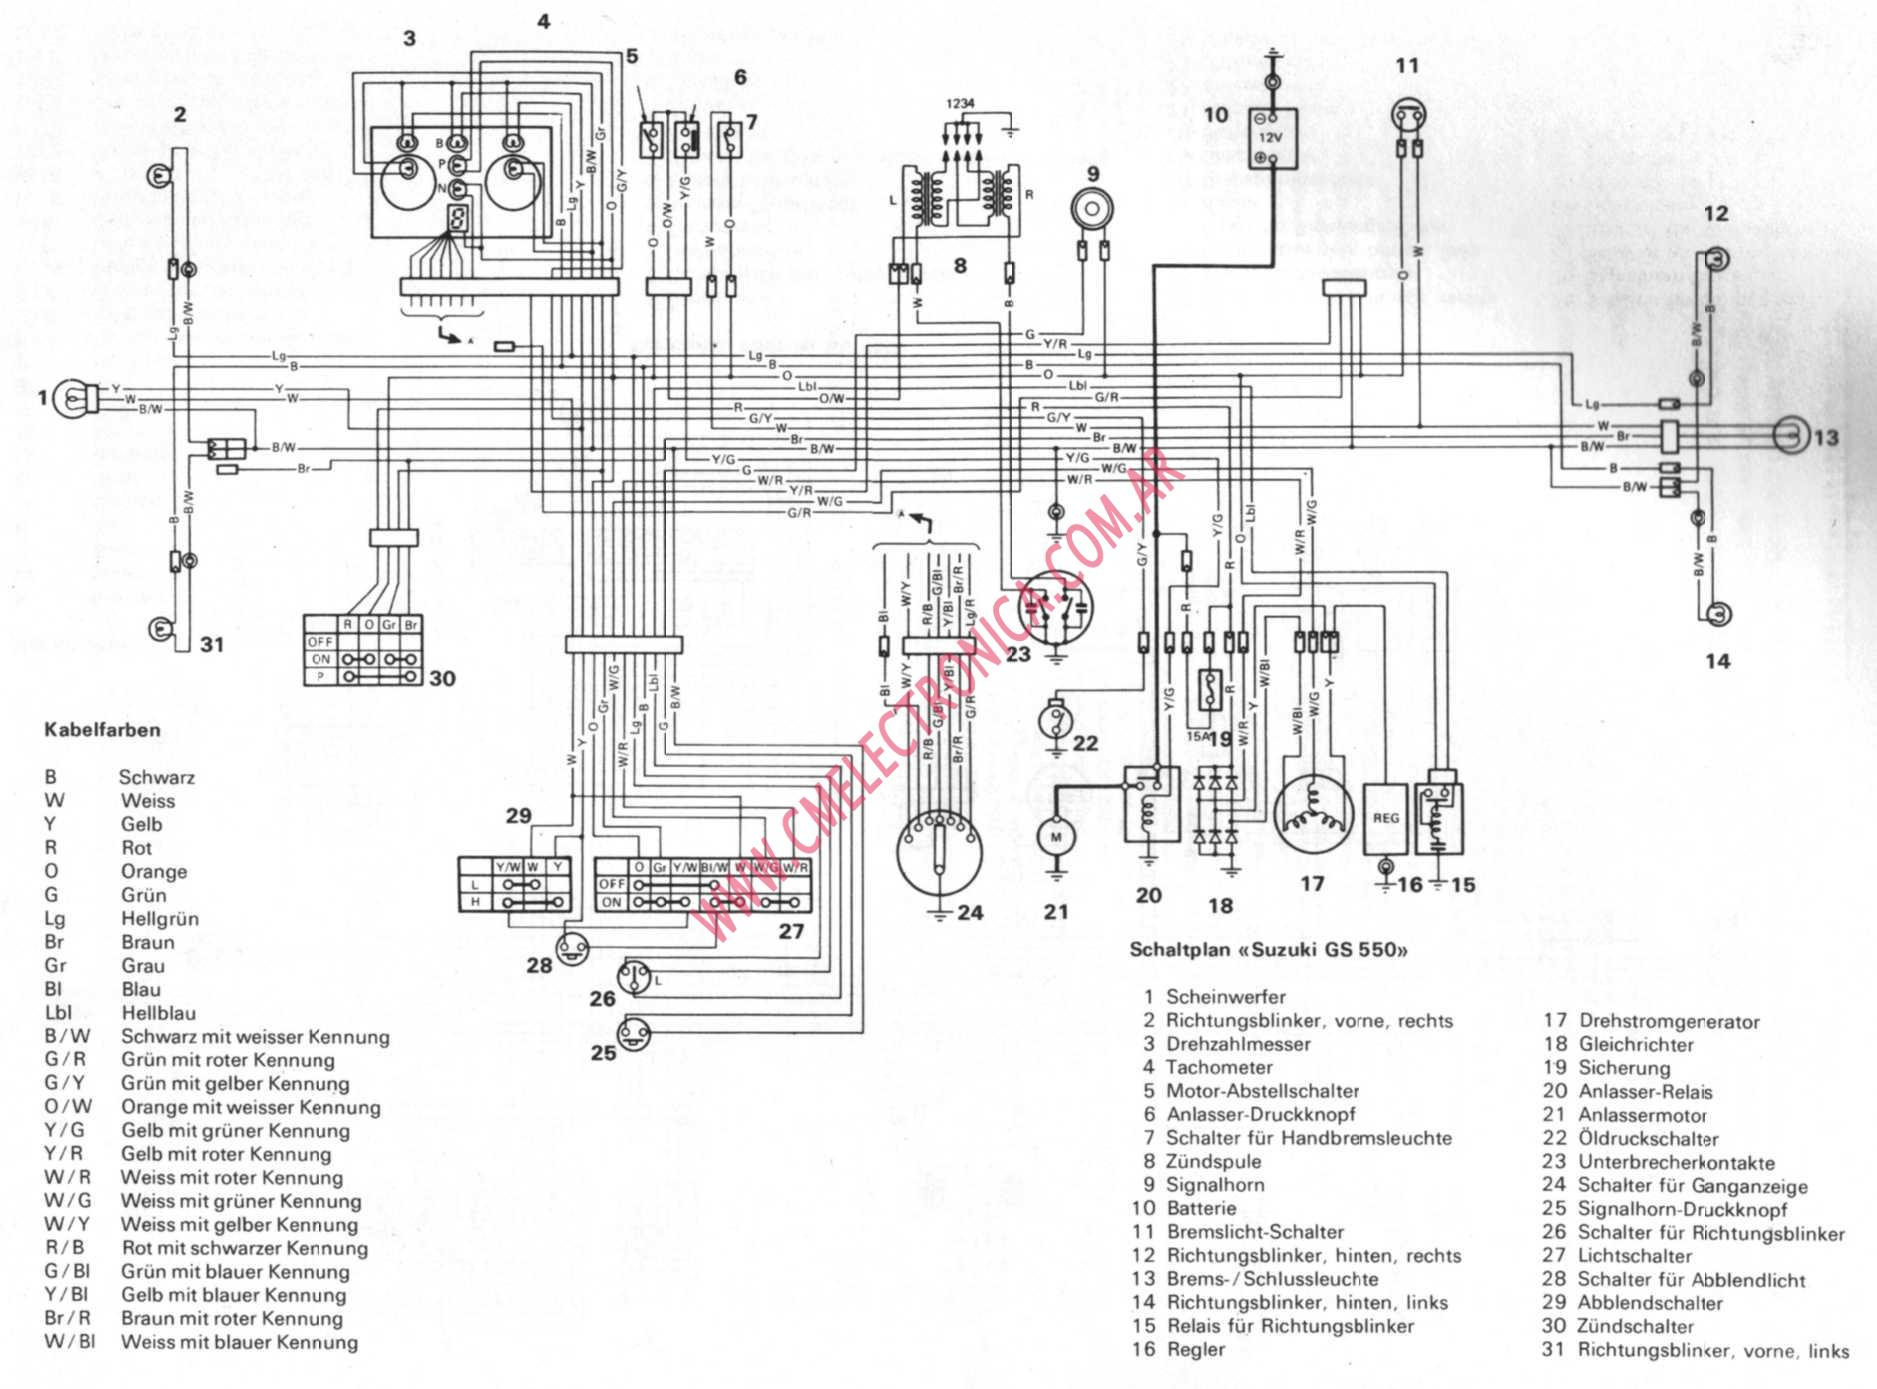 suzuki gs550 suzuki gs550 wiring diagram suzuki wiring diagrams instruction gs750 wiring diagram at bayanpartner.co